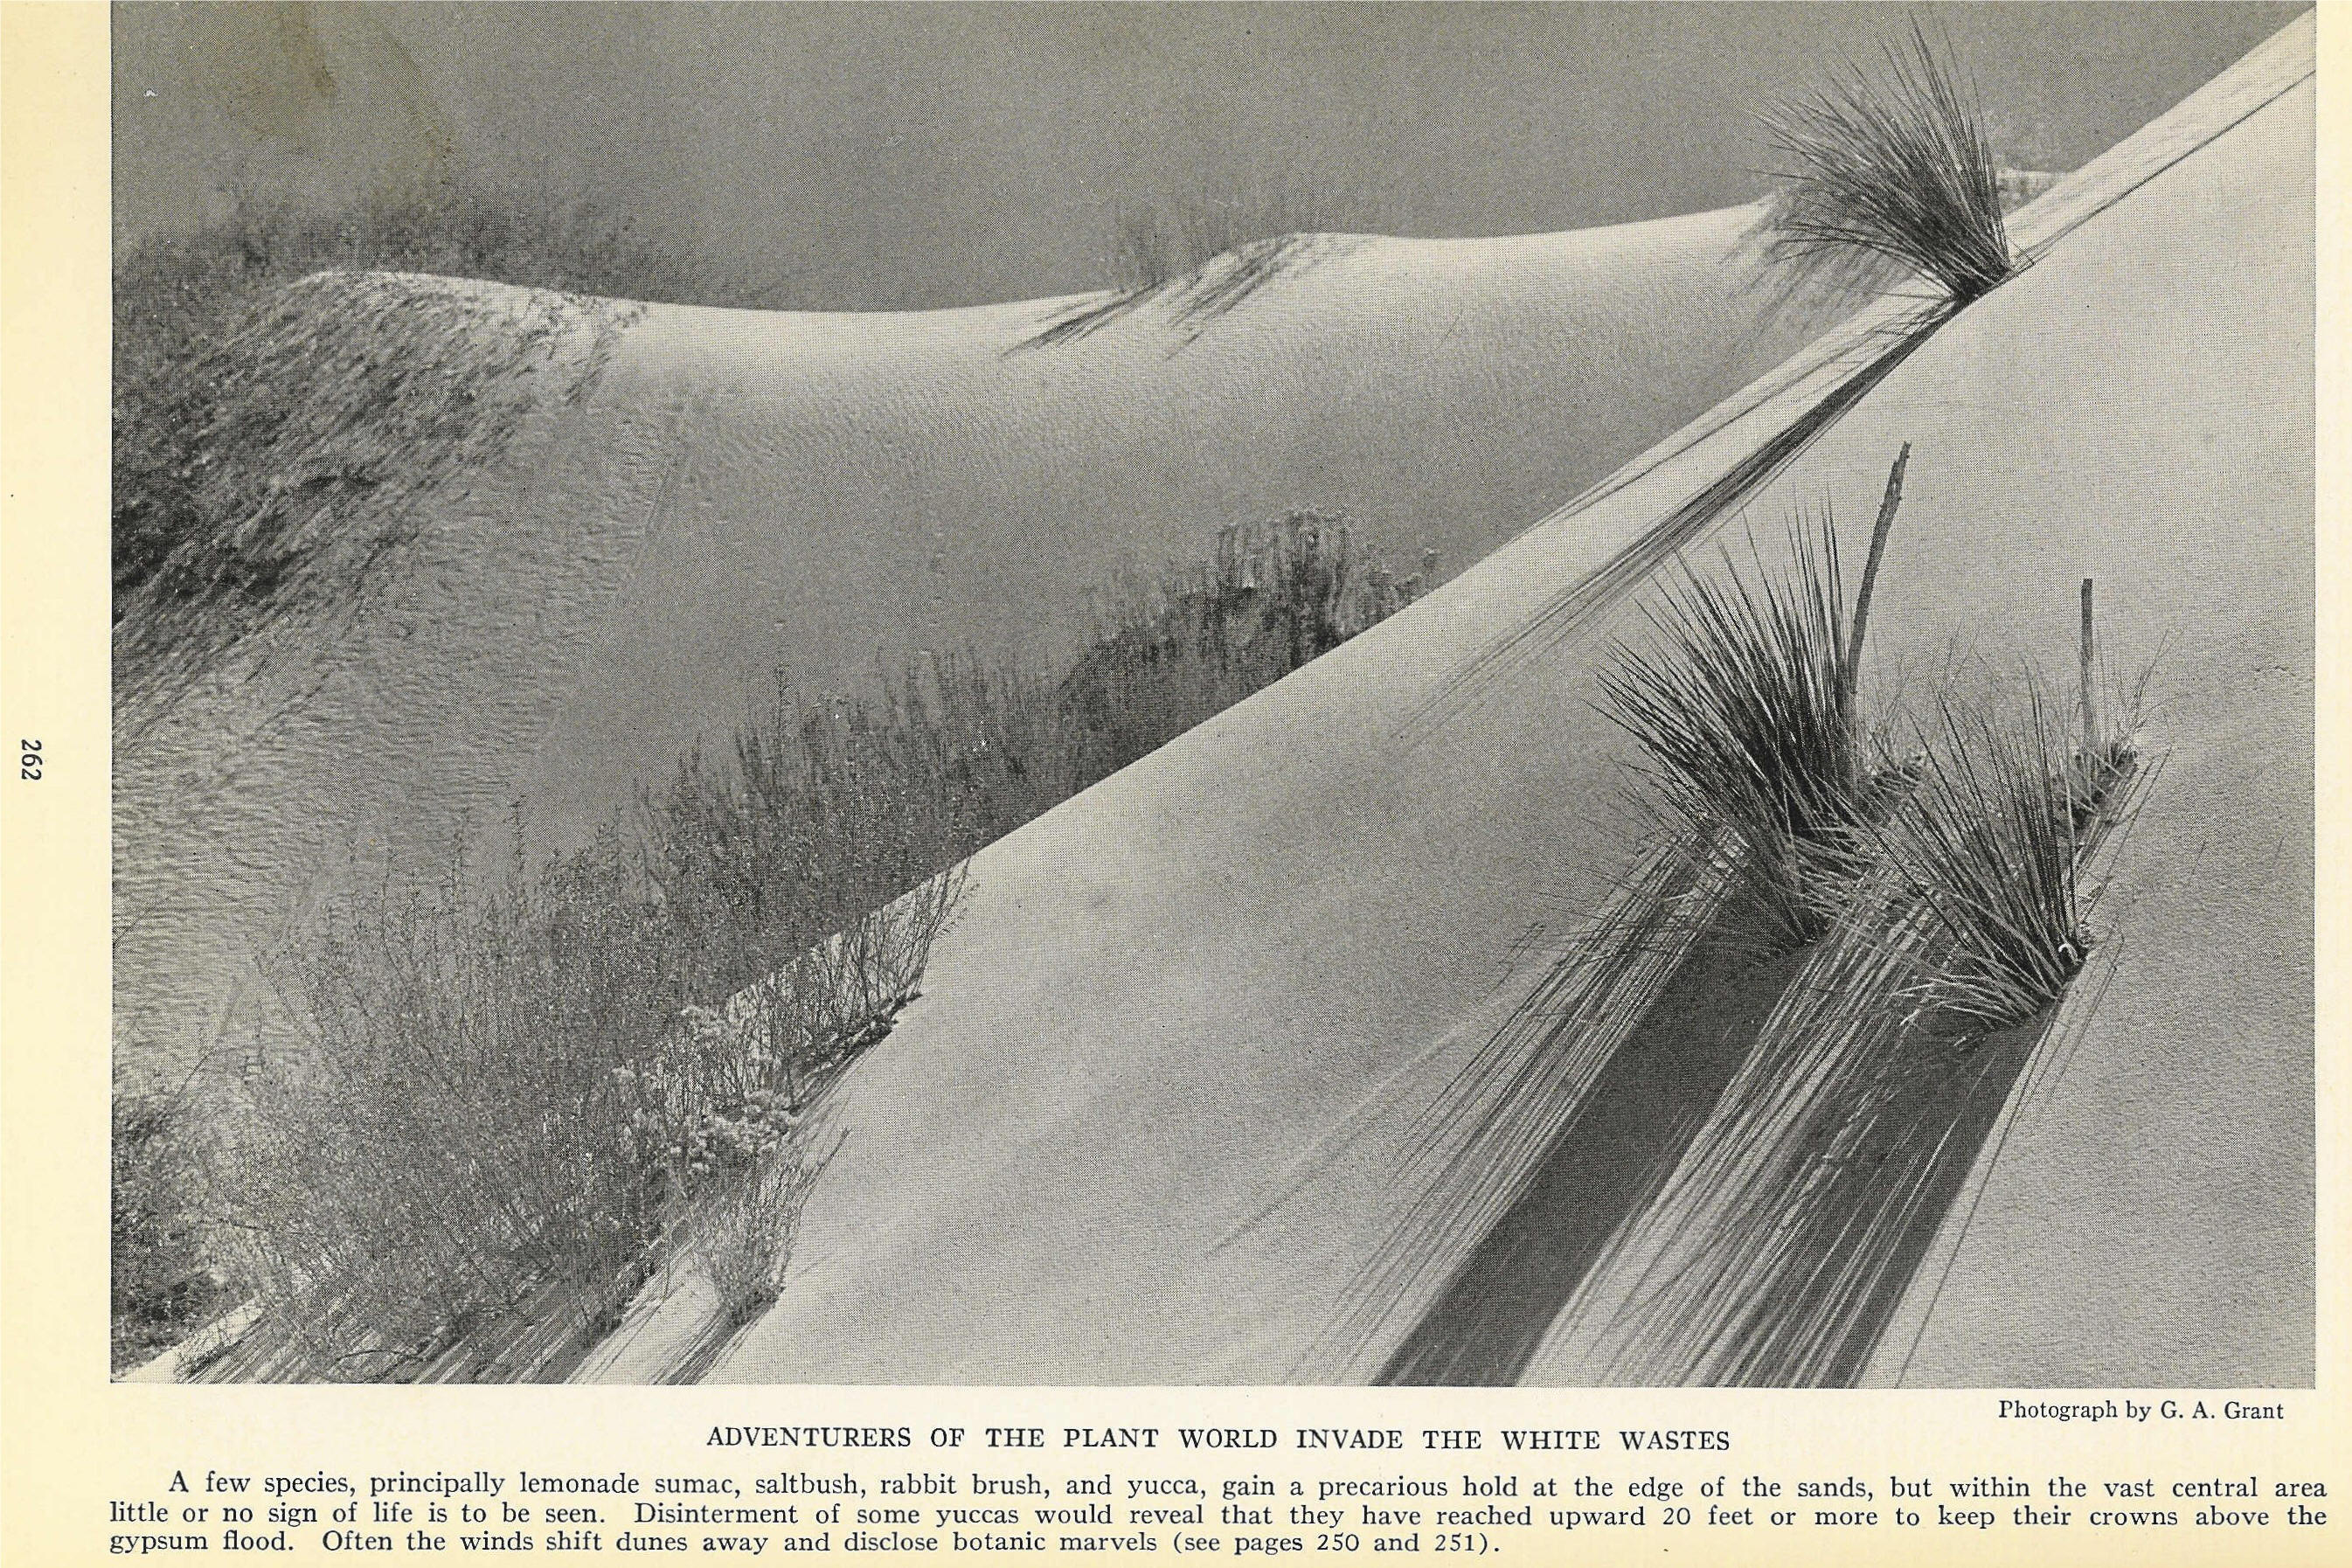 The White Sands of Alamogordo - National Geographic, August 1935